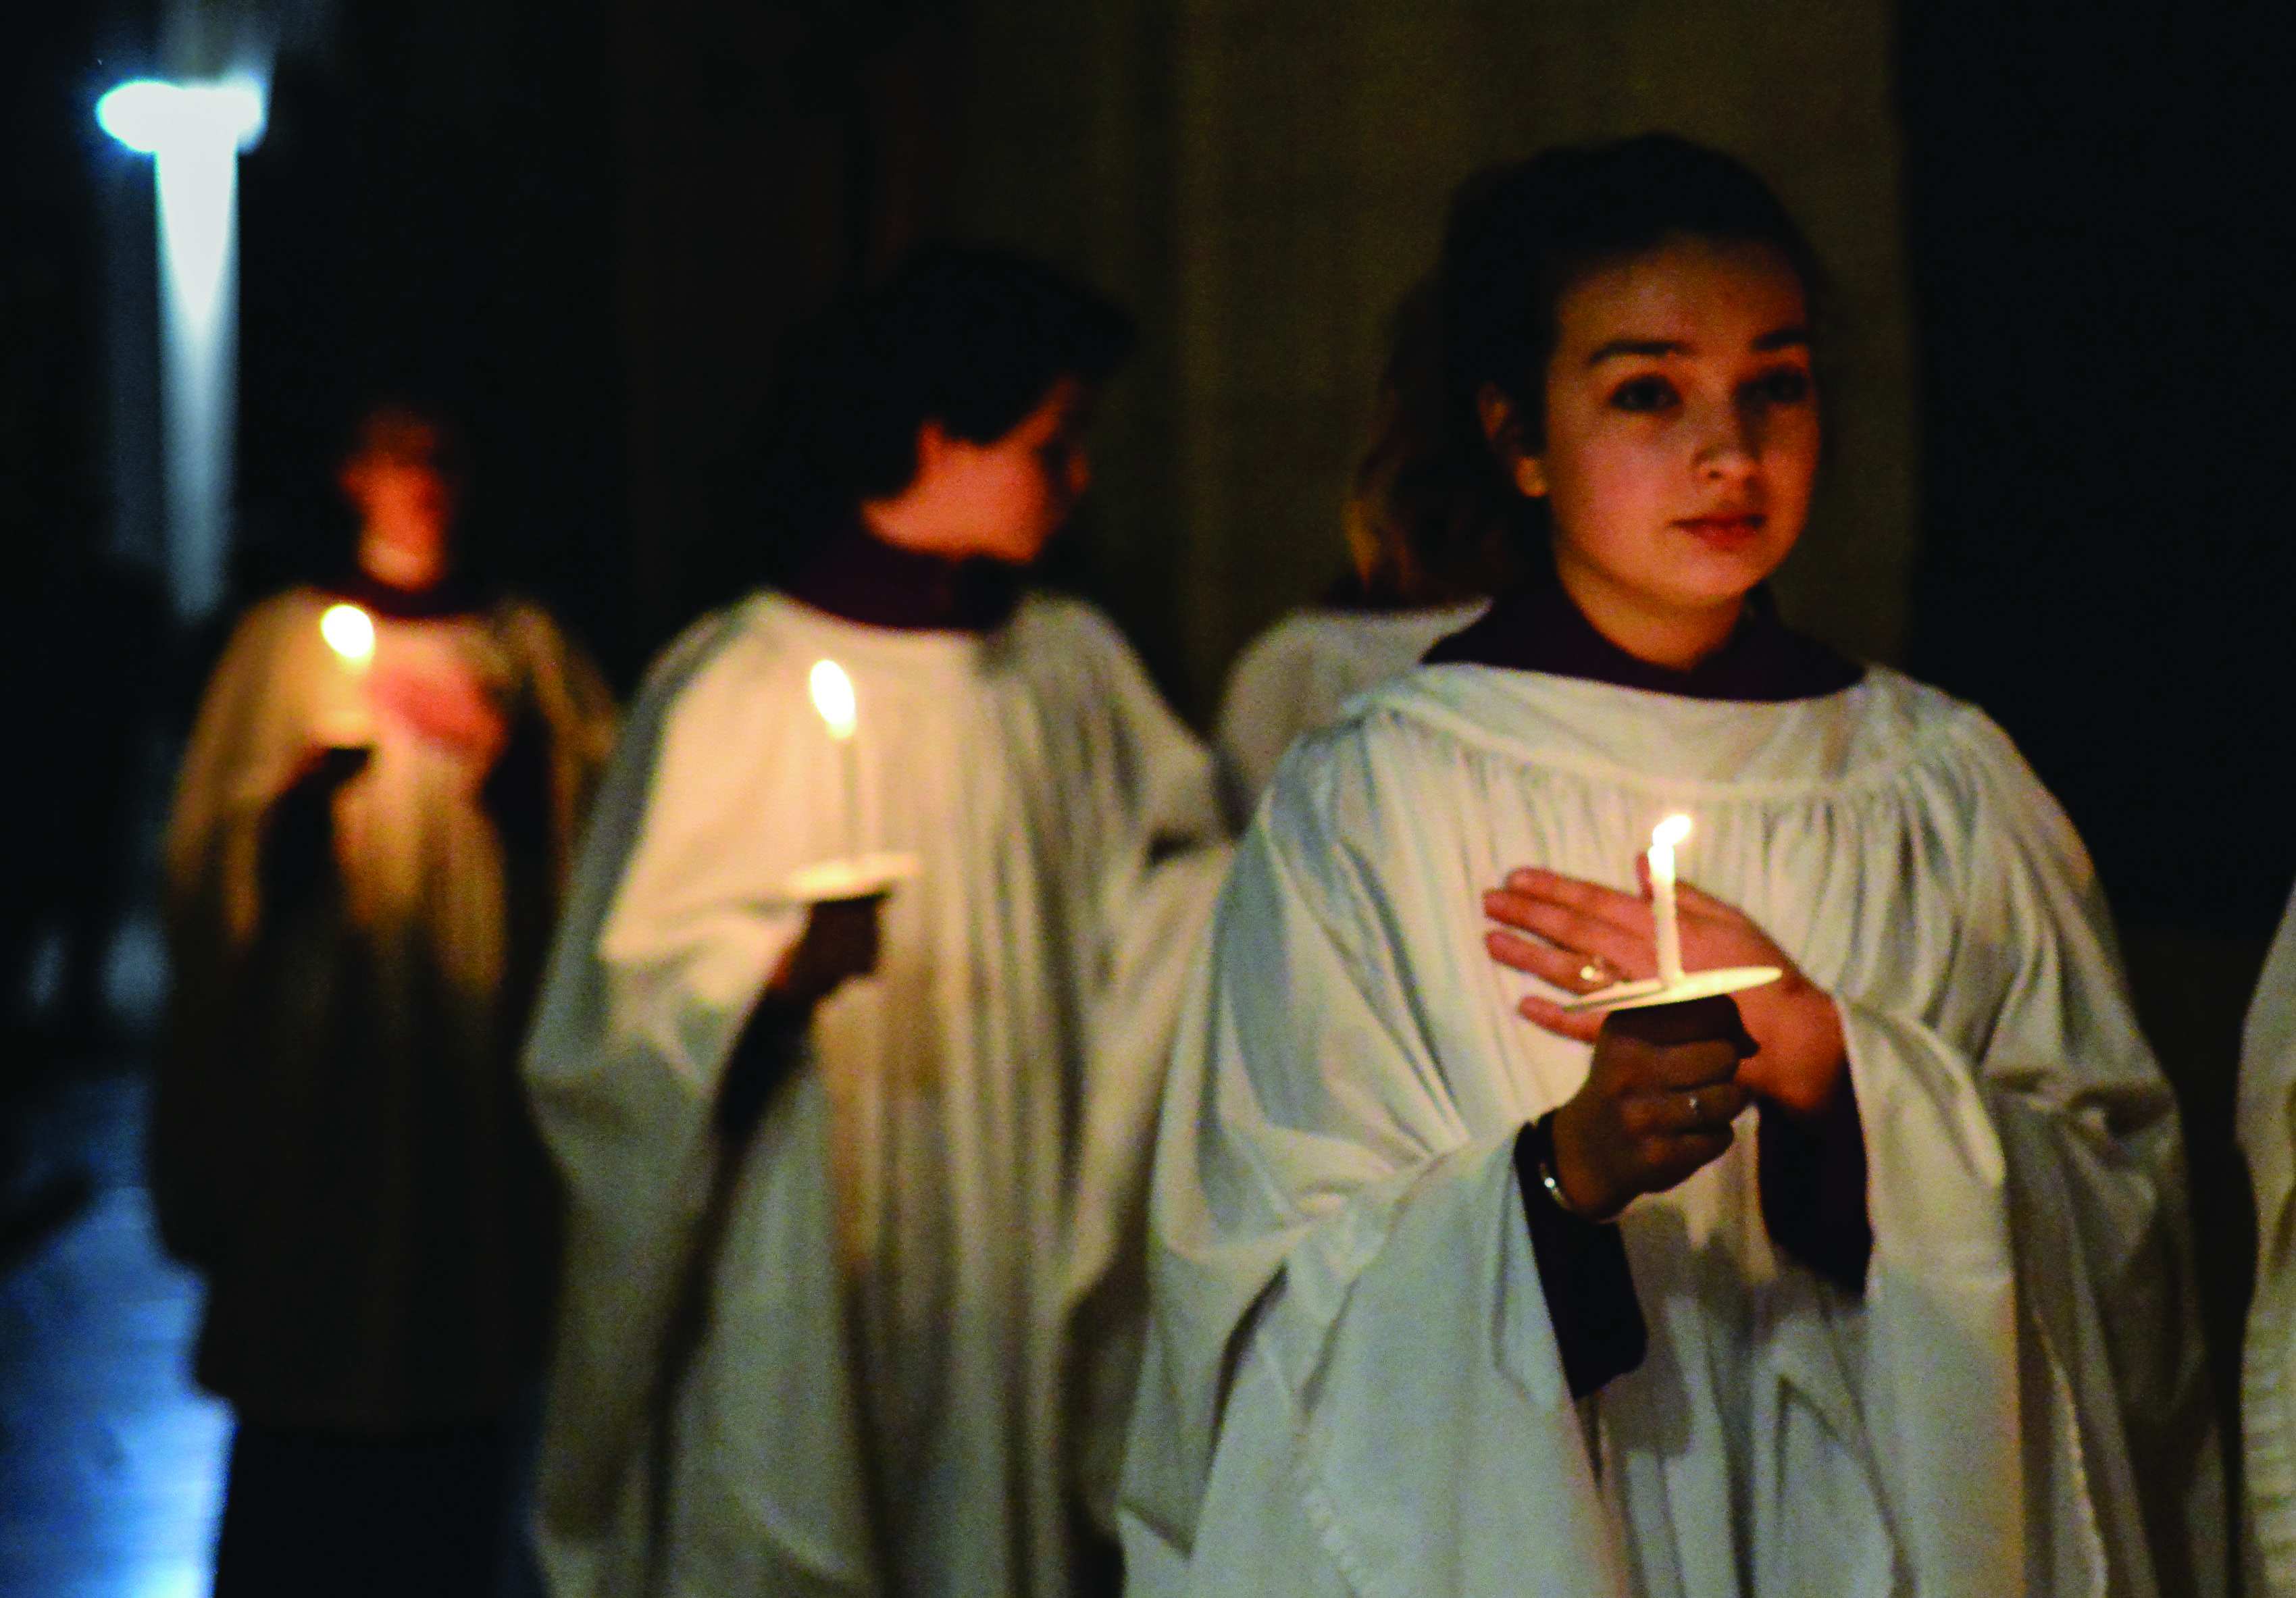 Christmas Service at Downside Abbey